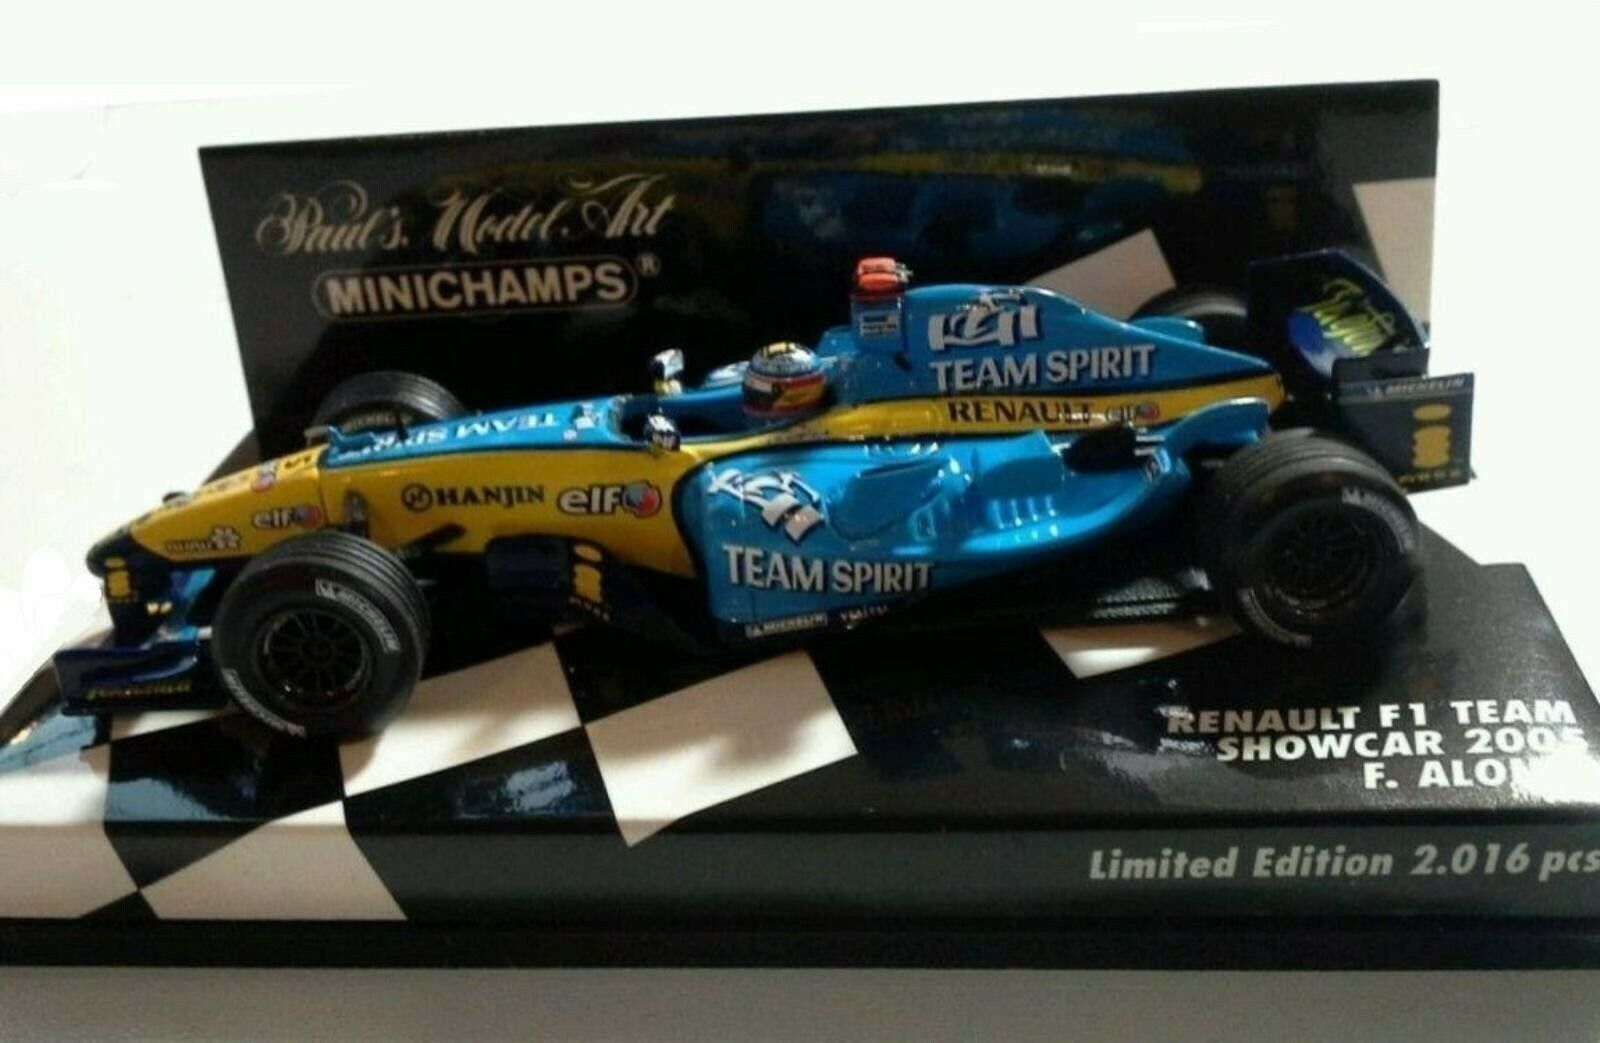 WOW EXTREMELY RARE Renault R25 Fer Alonso Grimaldi Show 2005 1 43 Minichamps